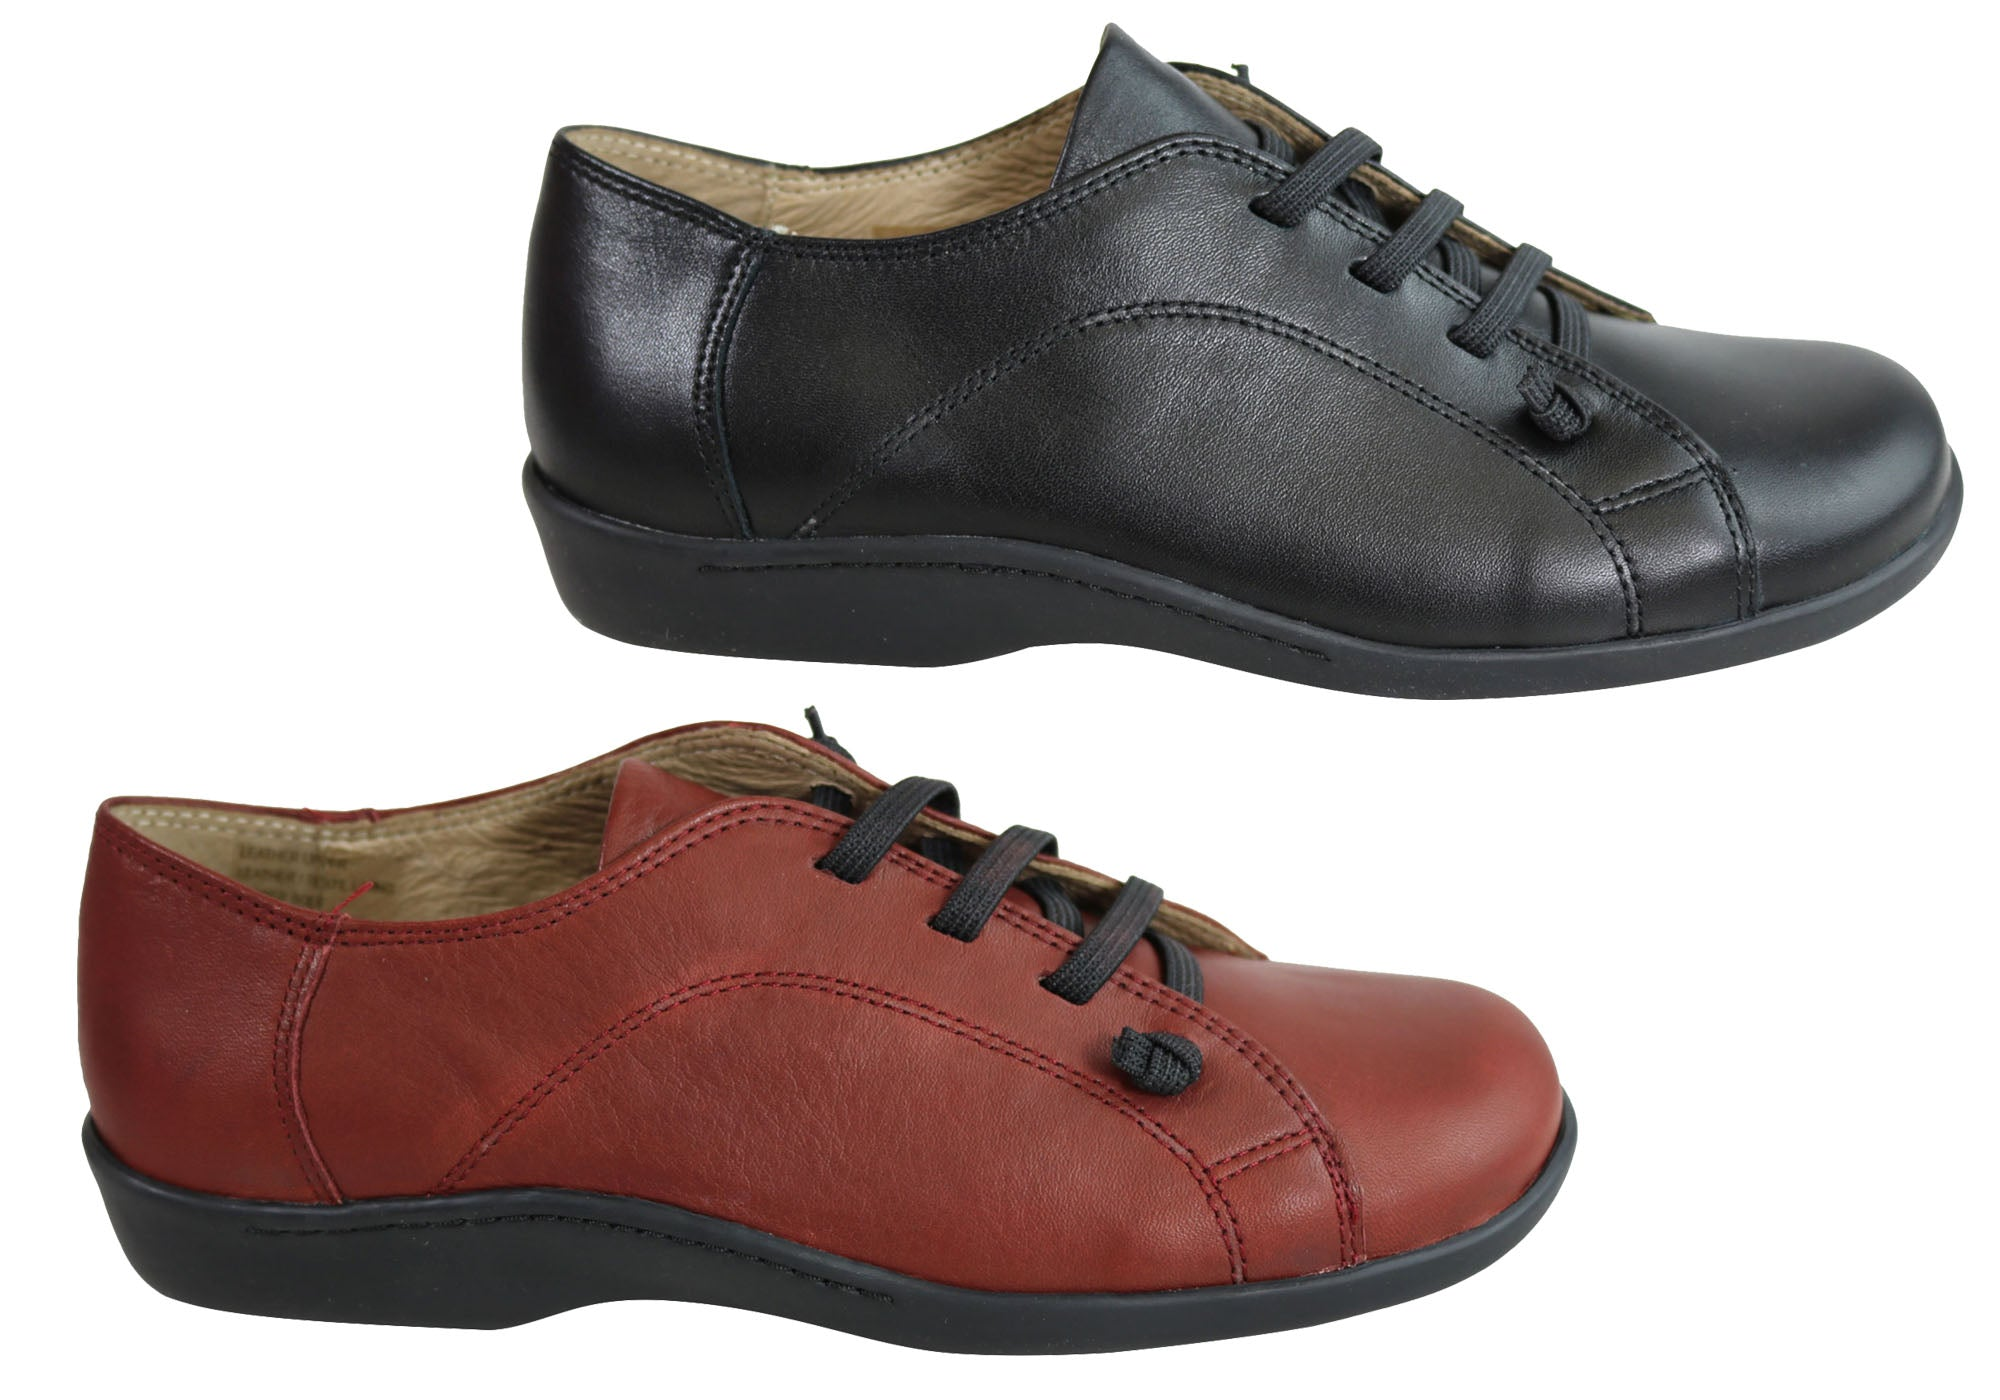 WOMENS COMFORTABLE LEATHER SHOES